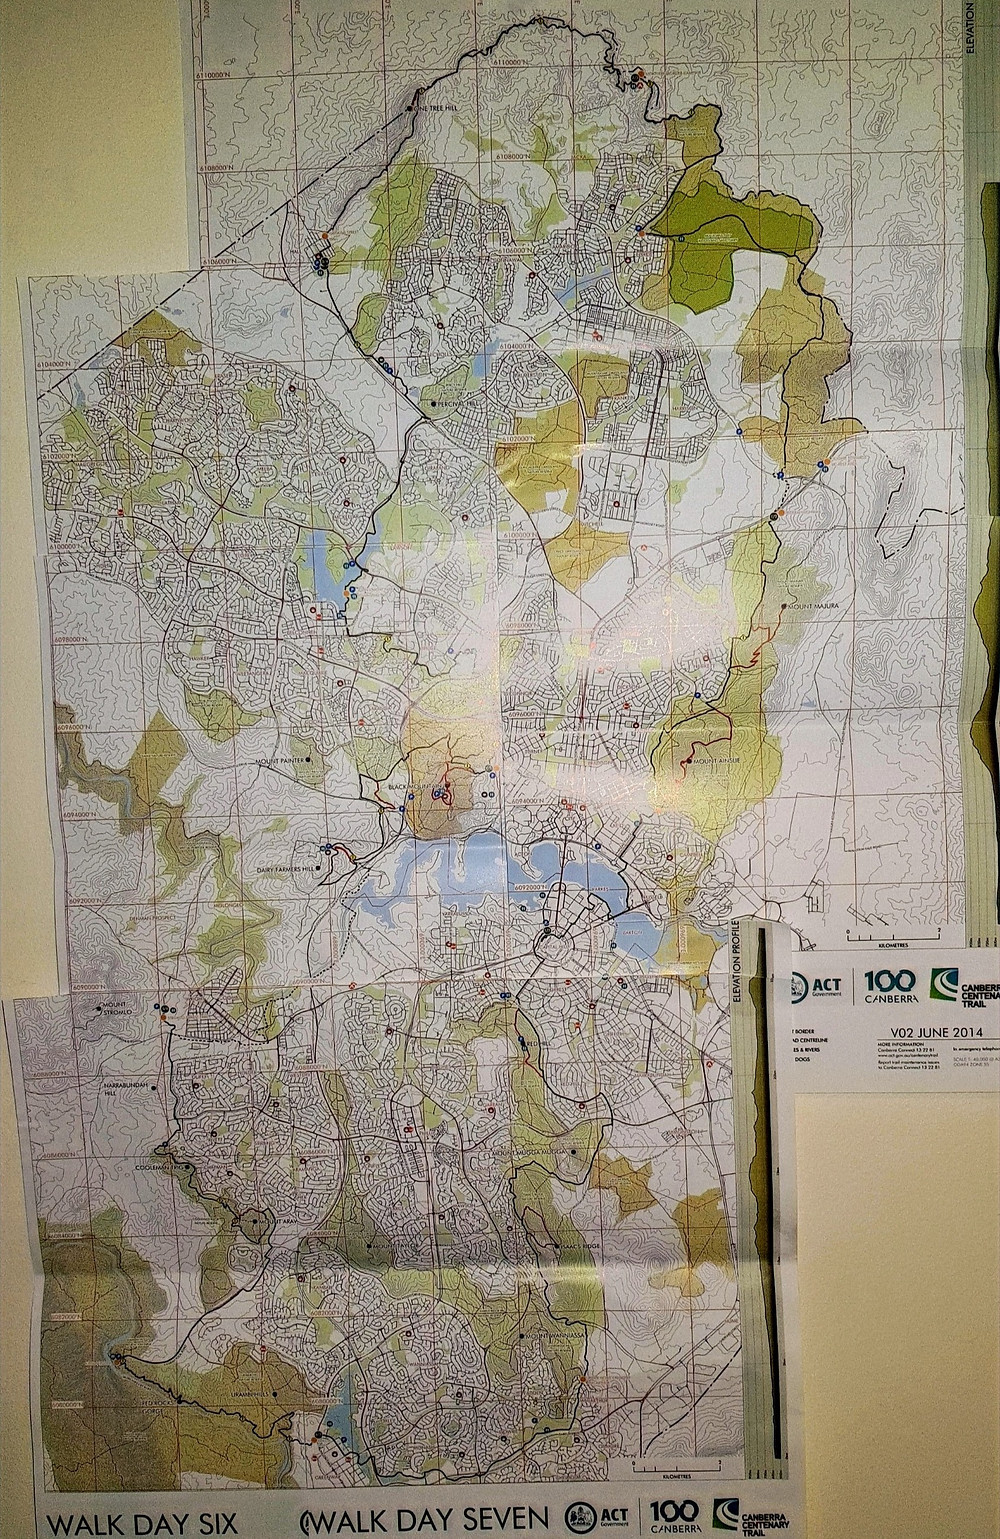 Canberra Centenary Trail, Paper Maps, The Cent